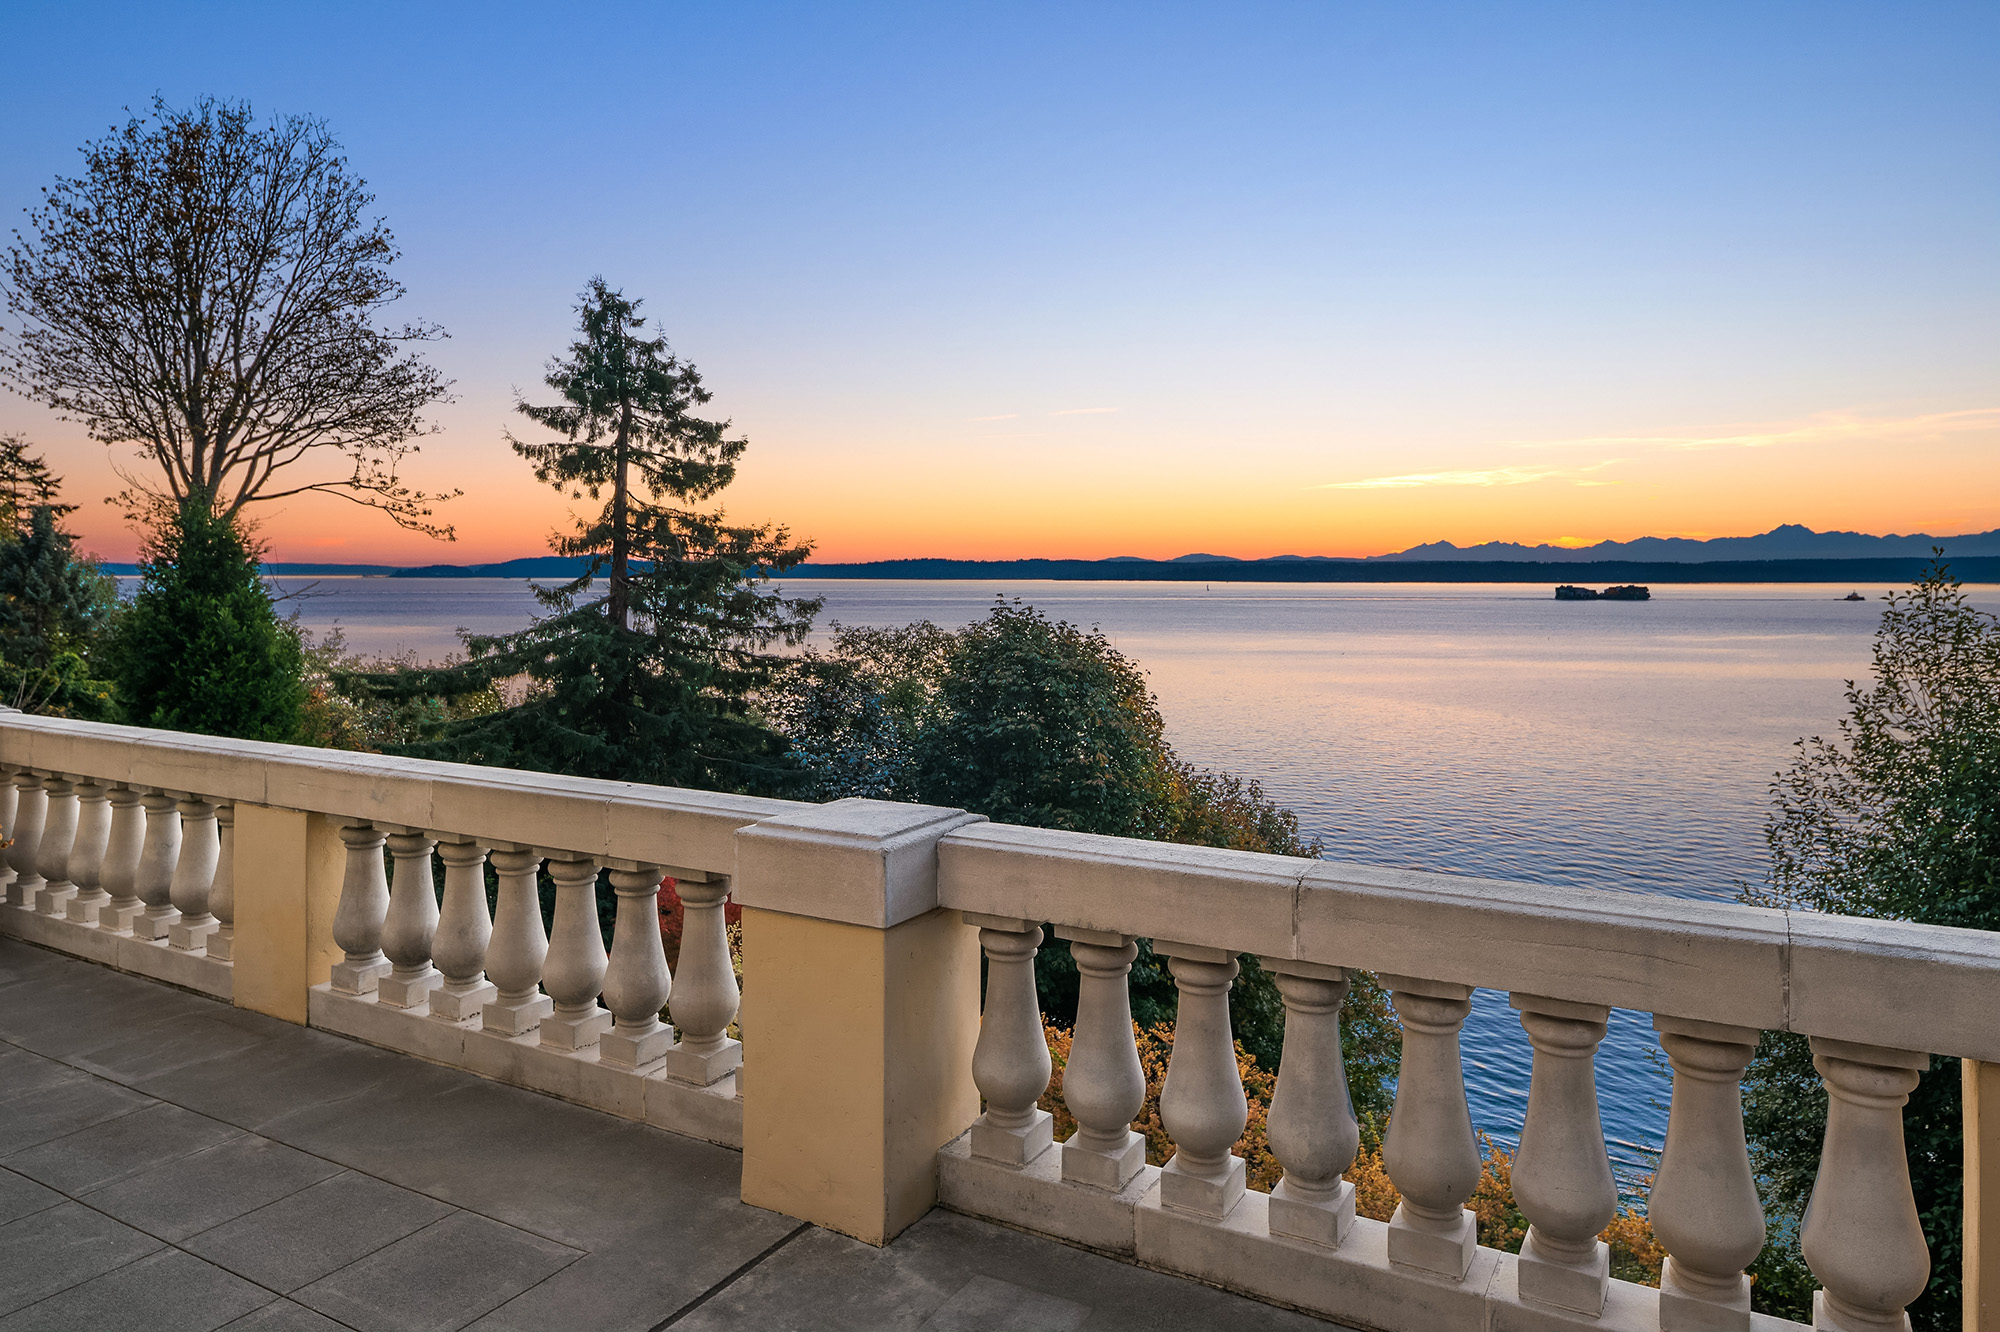 By the Numbers - From Lake Union west, the average and median selling prices were $1.08 million and $560,000, respectively. Fifteen-month residential average and median selling prices from East Lake Union to Leschi were $2.03 million and $1.63 million, respectively.